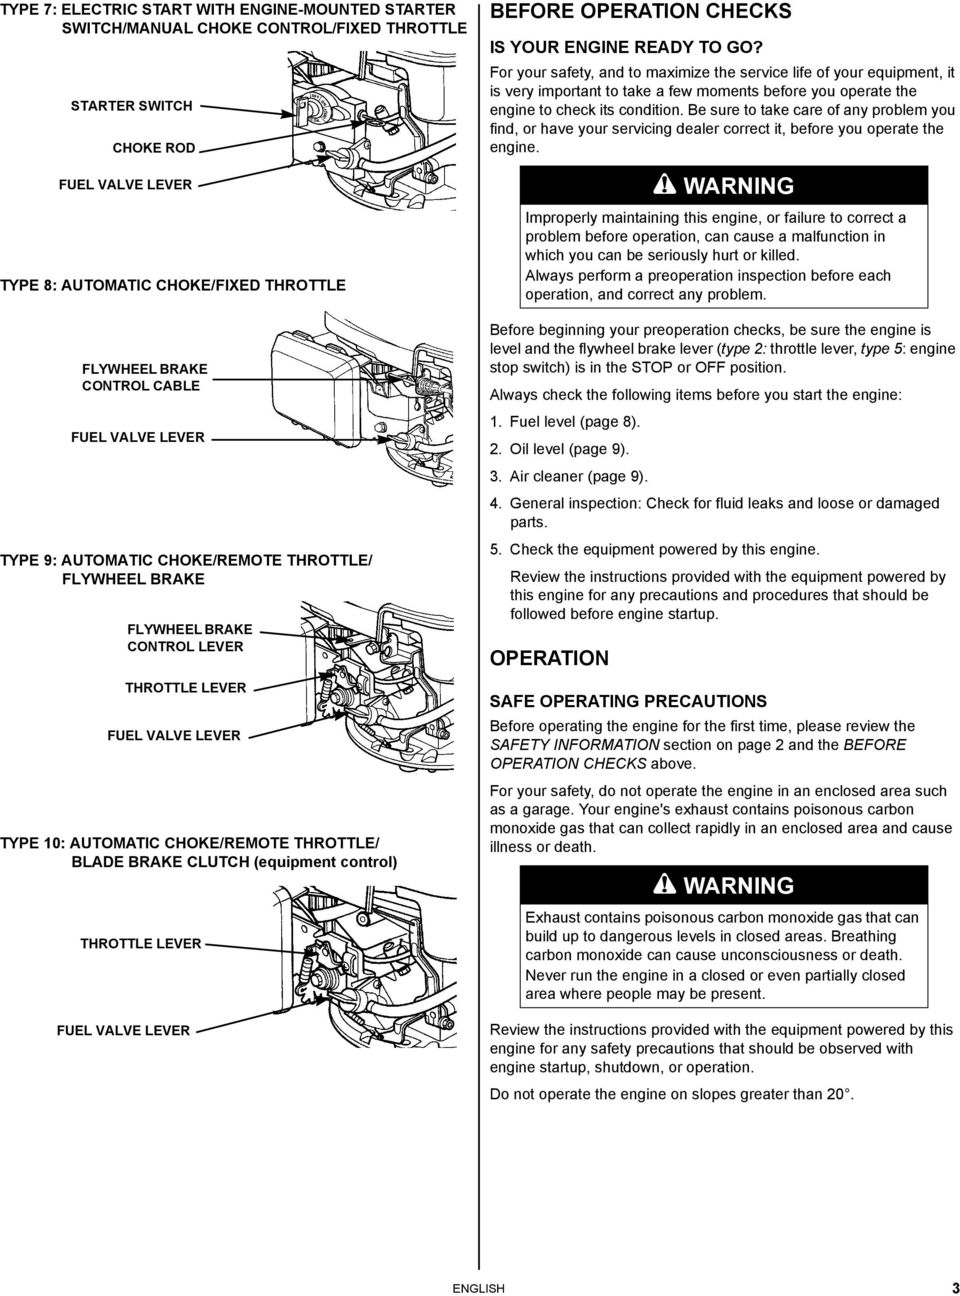 CLUTCH (equipment control) THROTTLE LEVER FUEL VALVE LEVER BEFORE OPERATION CHECKS IS YOUR ENGINE READY TO GO?